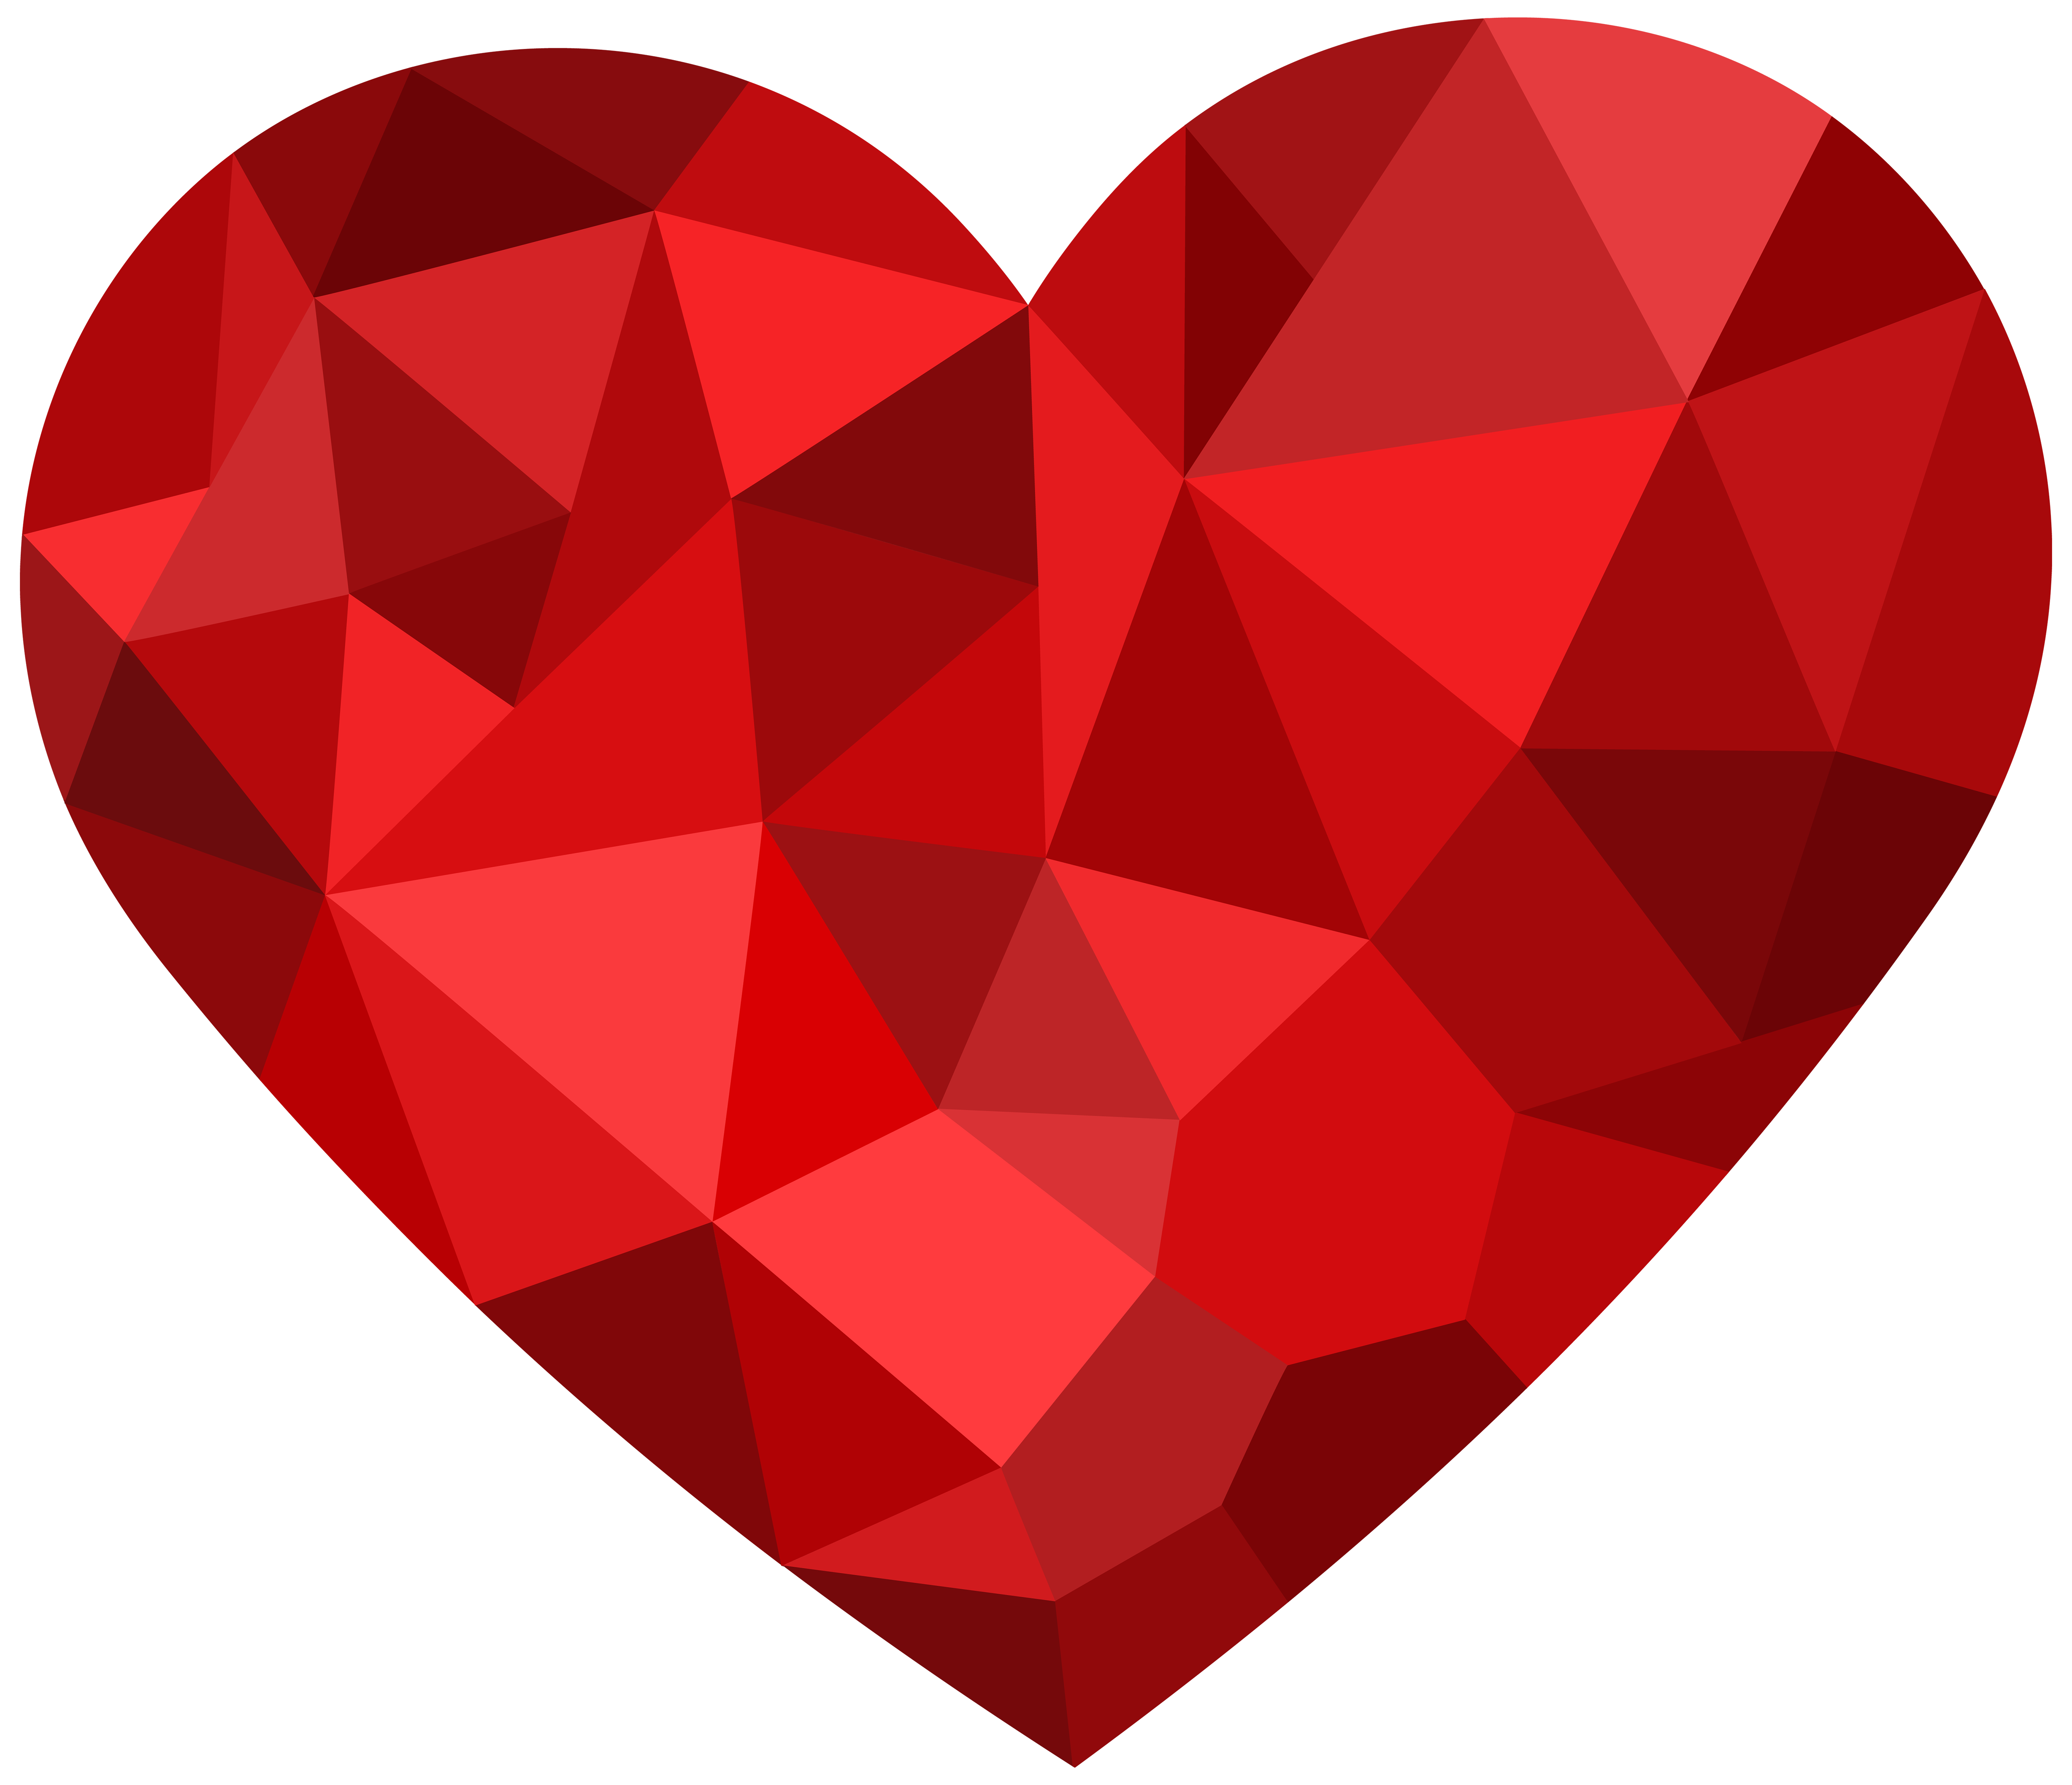 Clouds clipart red. Mosaic heart png best